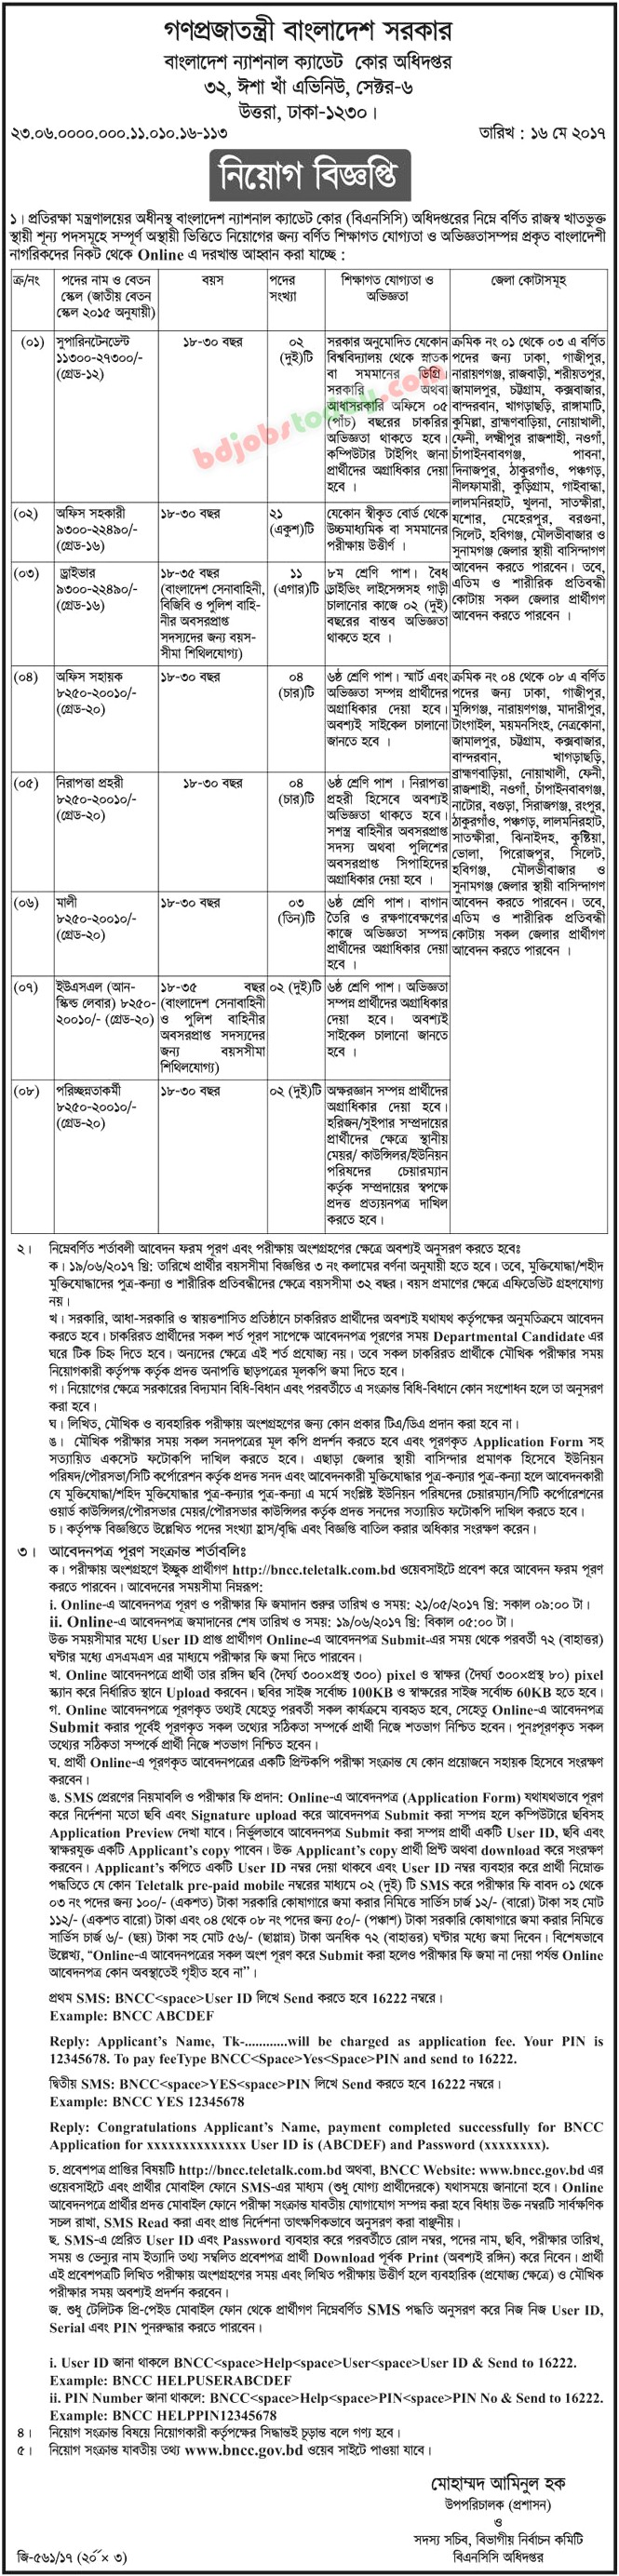 Bangladesh National Cadet Corps jobs